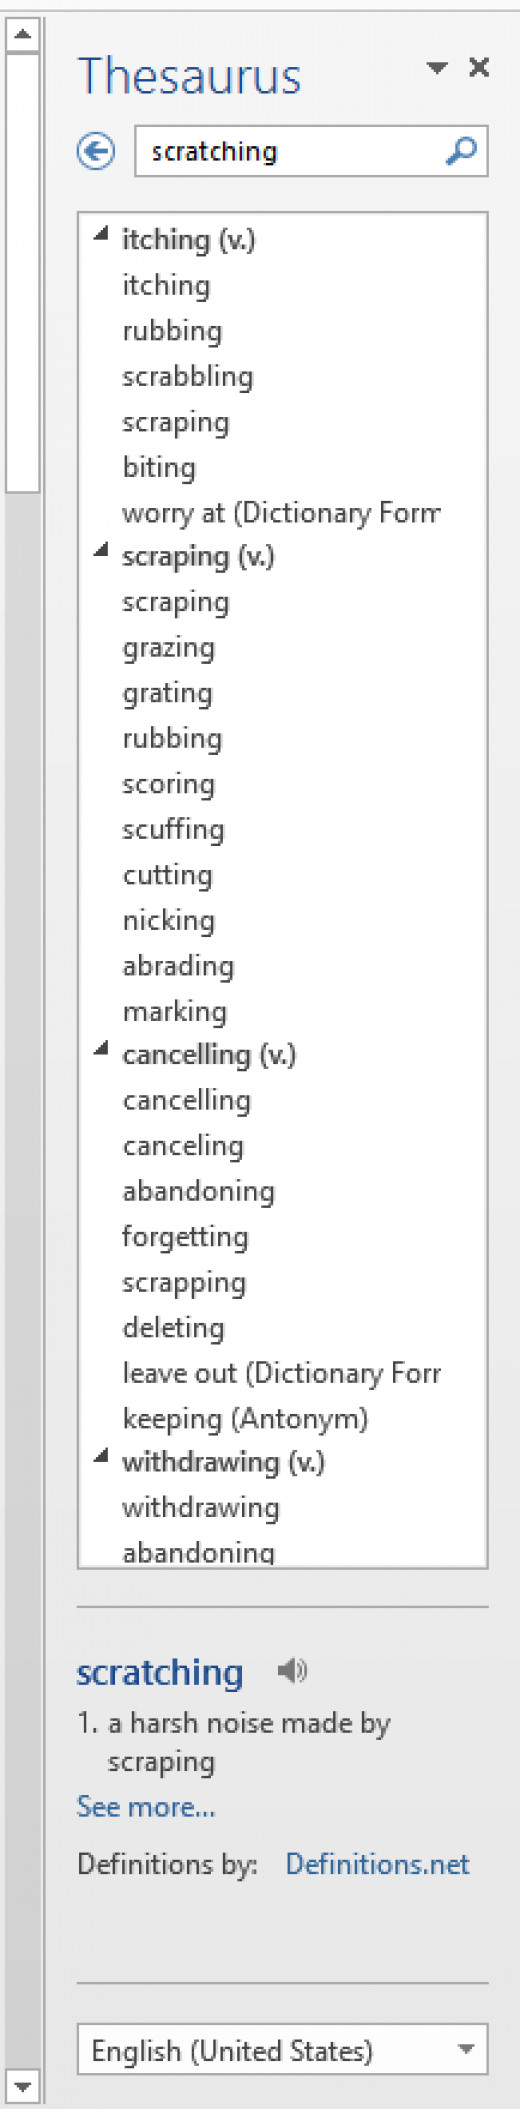 Screenshot of the Thesaurus pane in Word 2013.